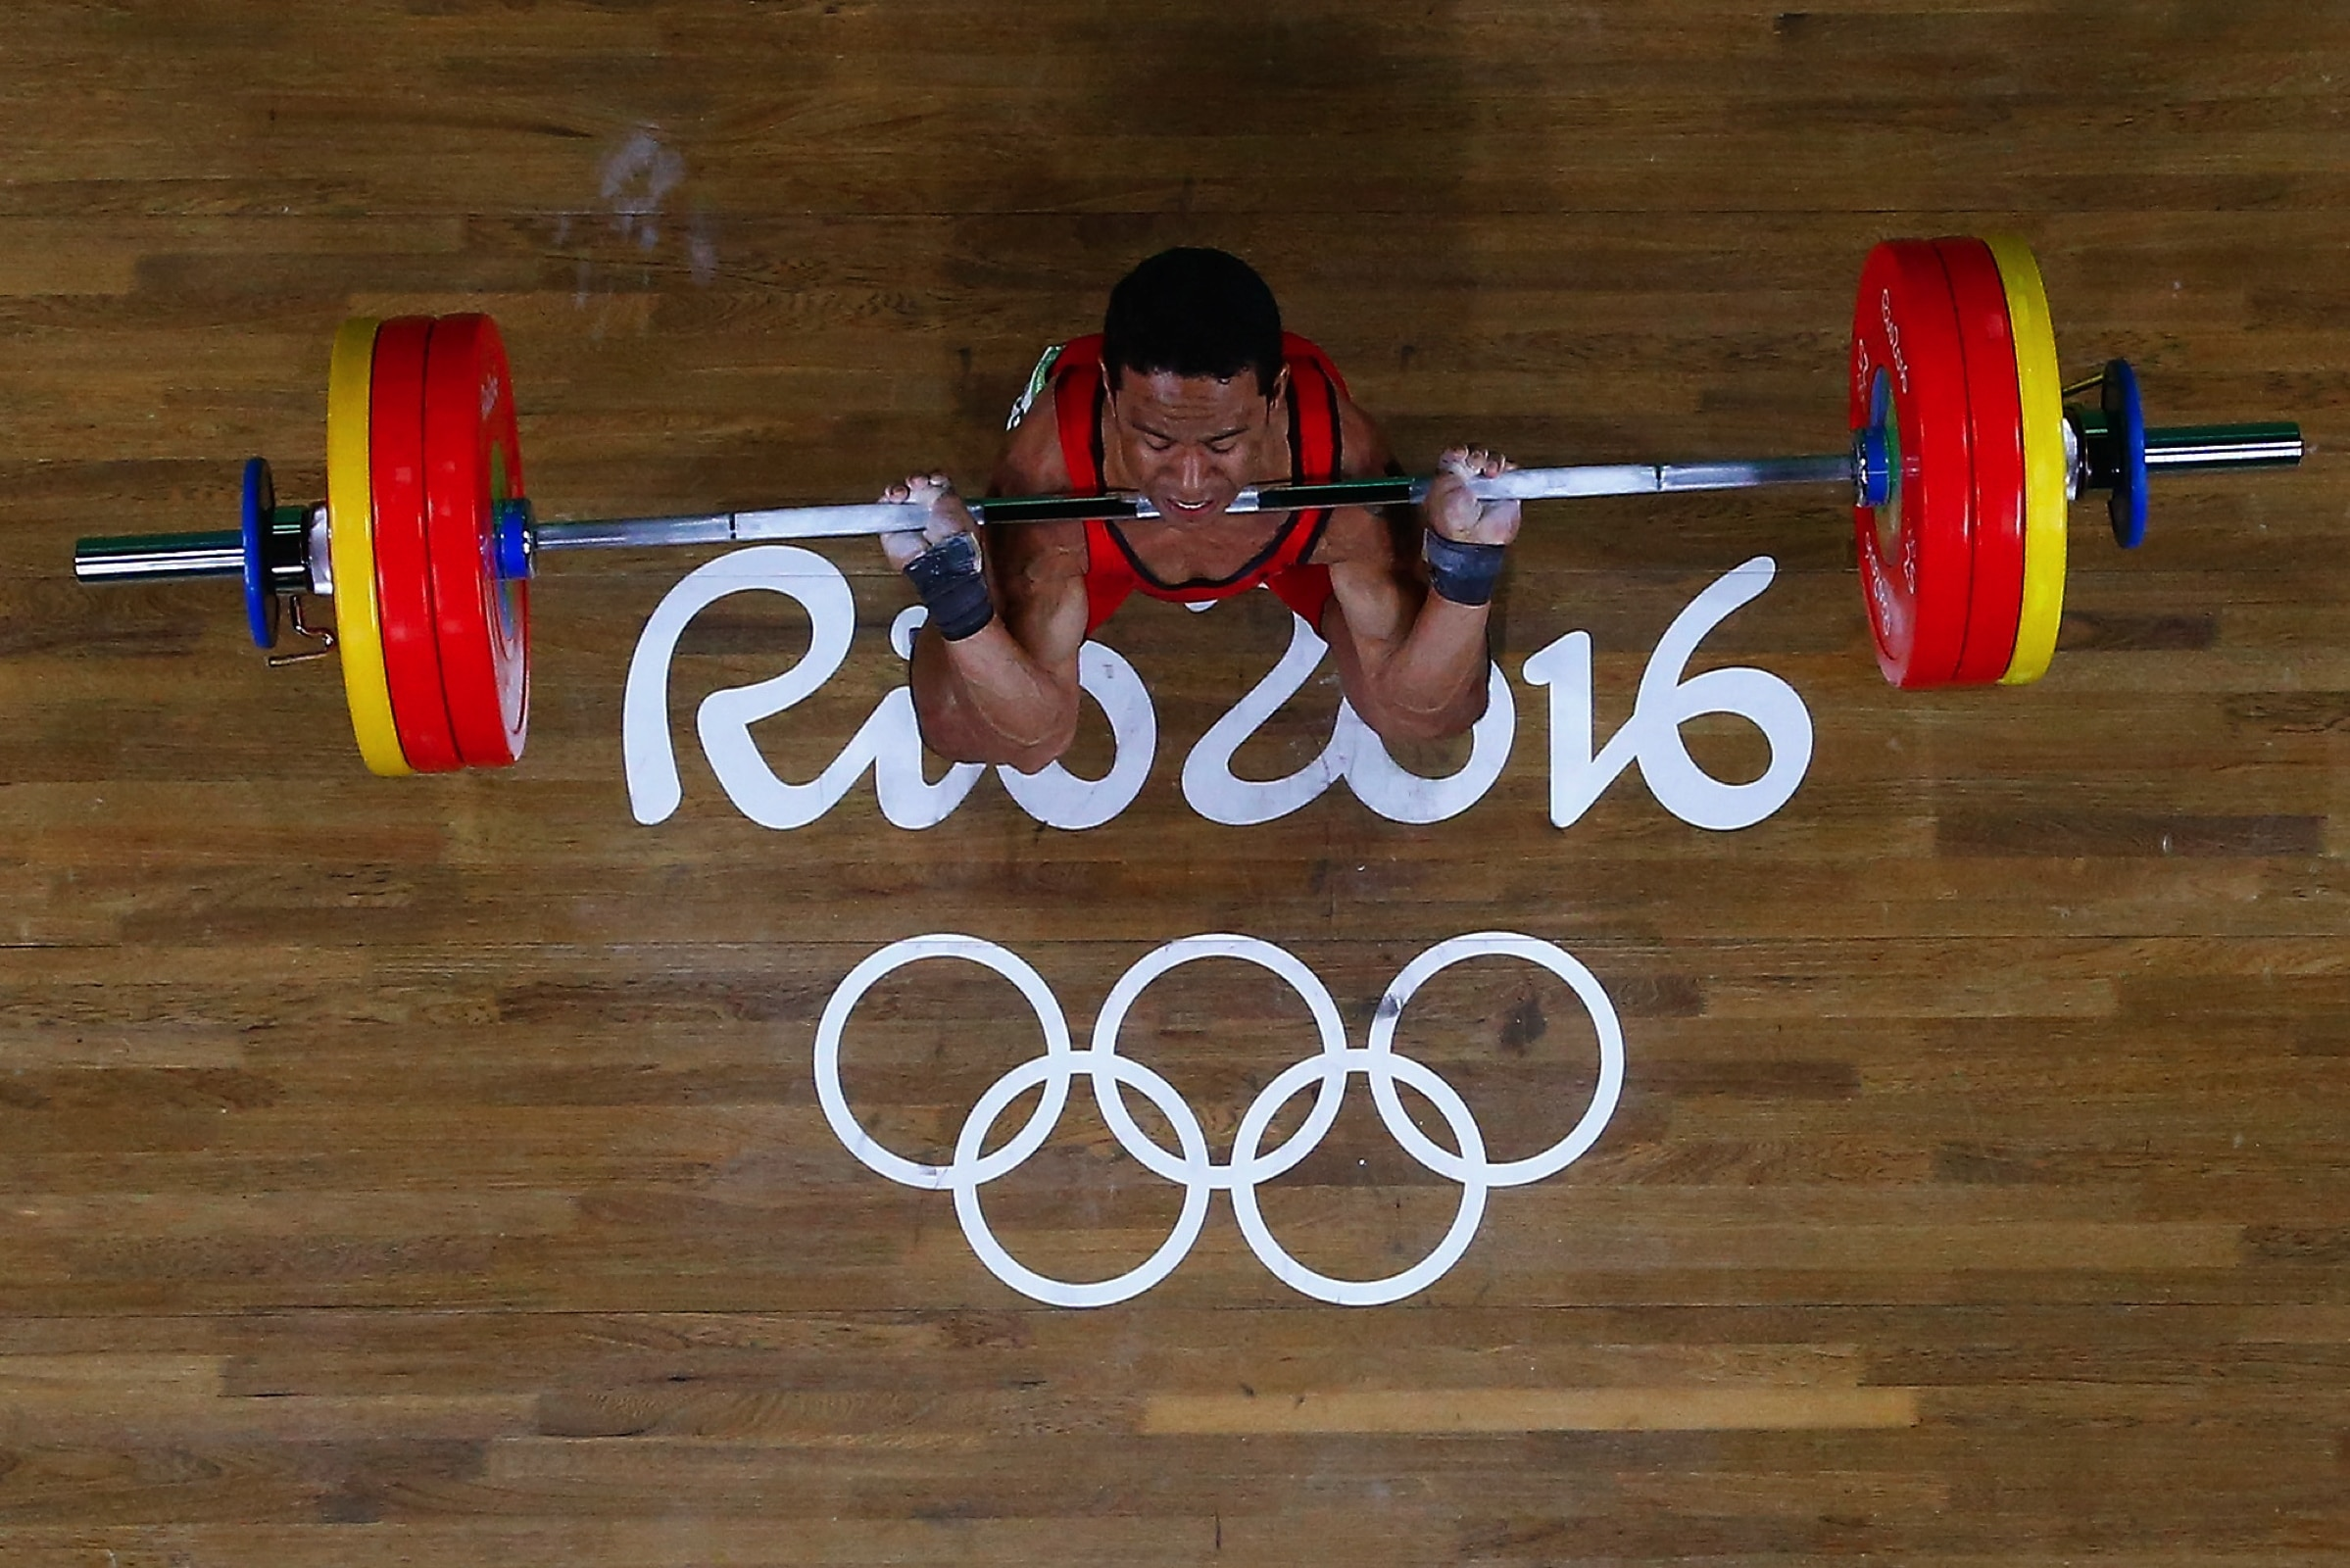 Weightlifting - Men's 62kg